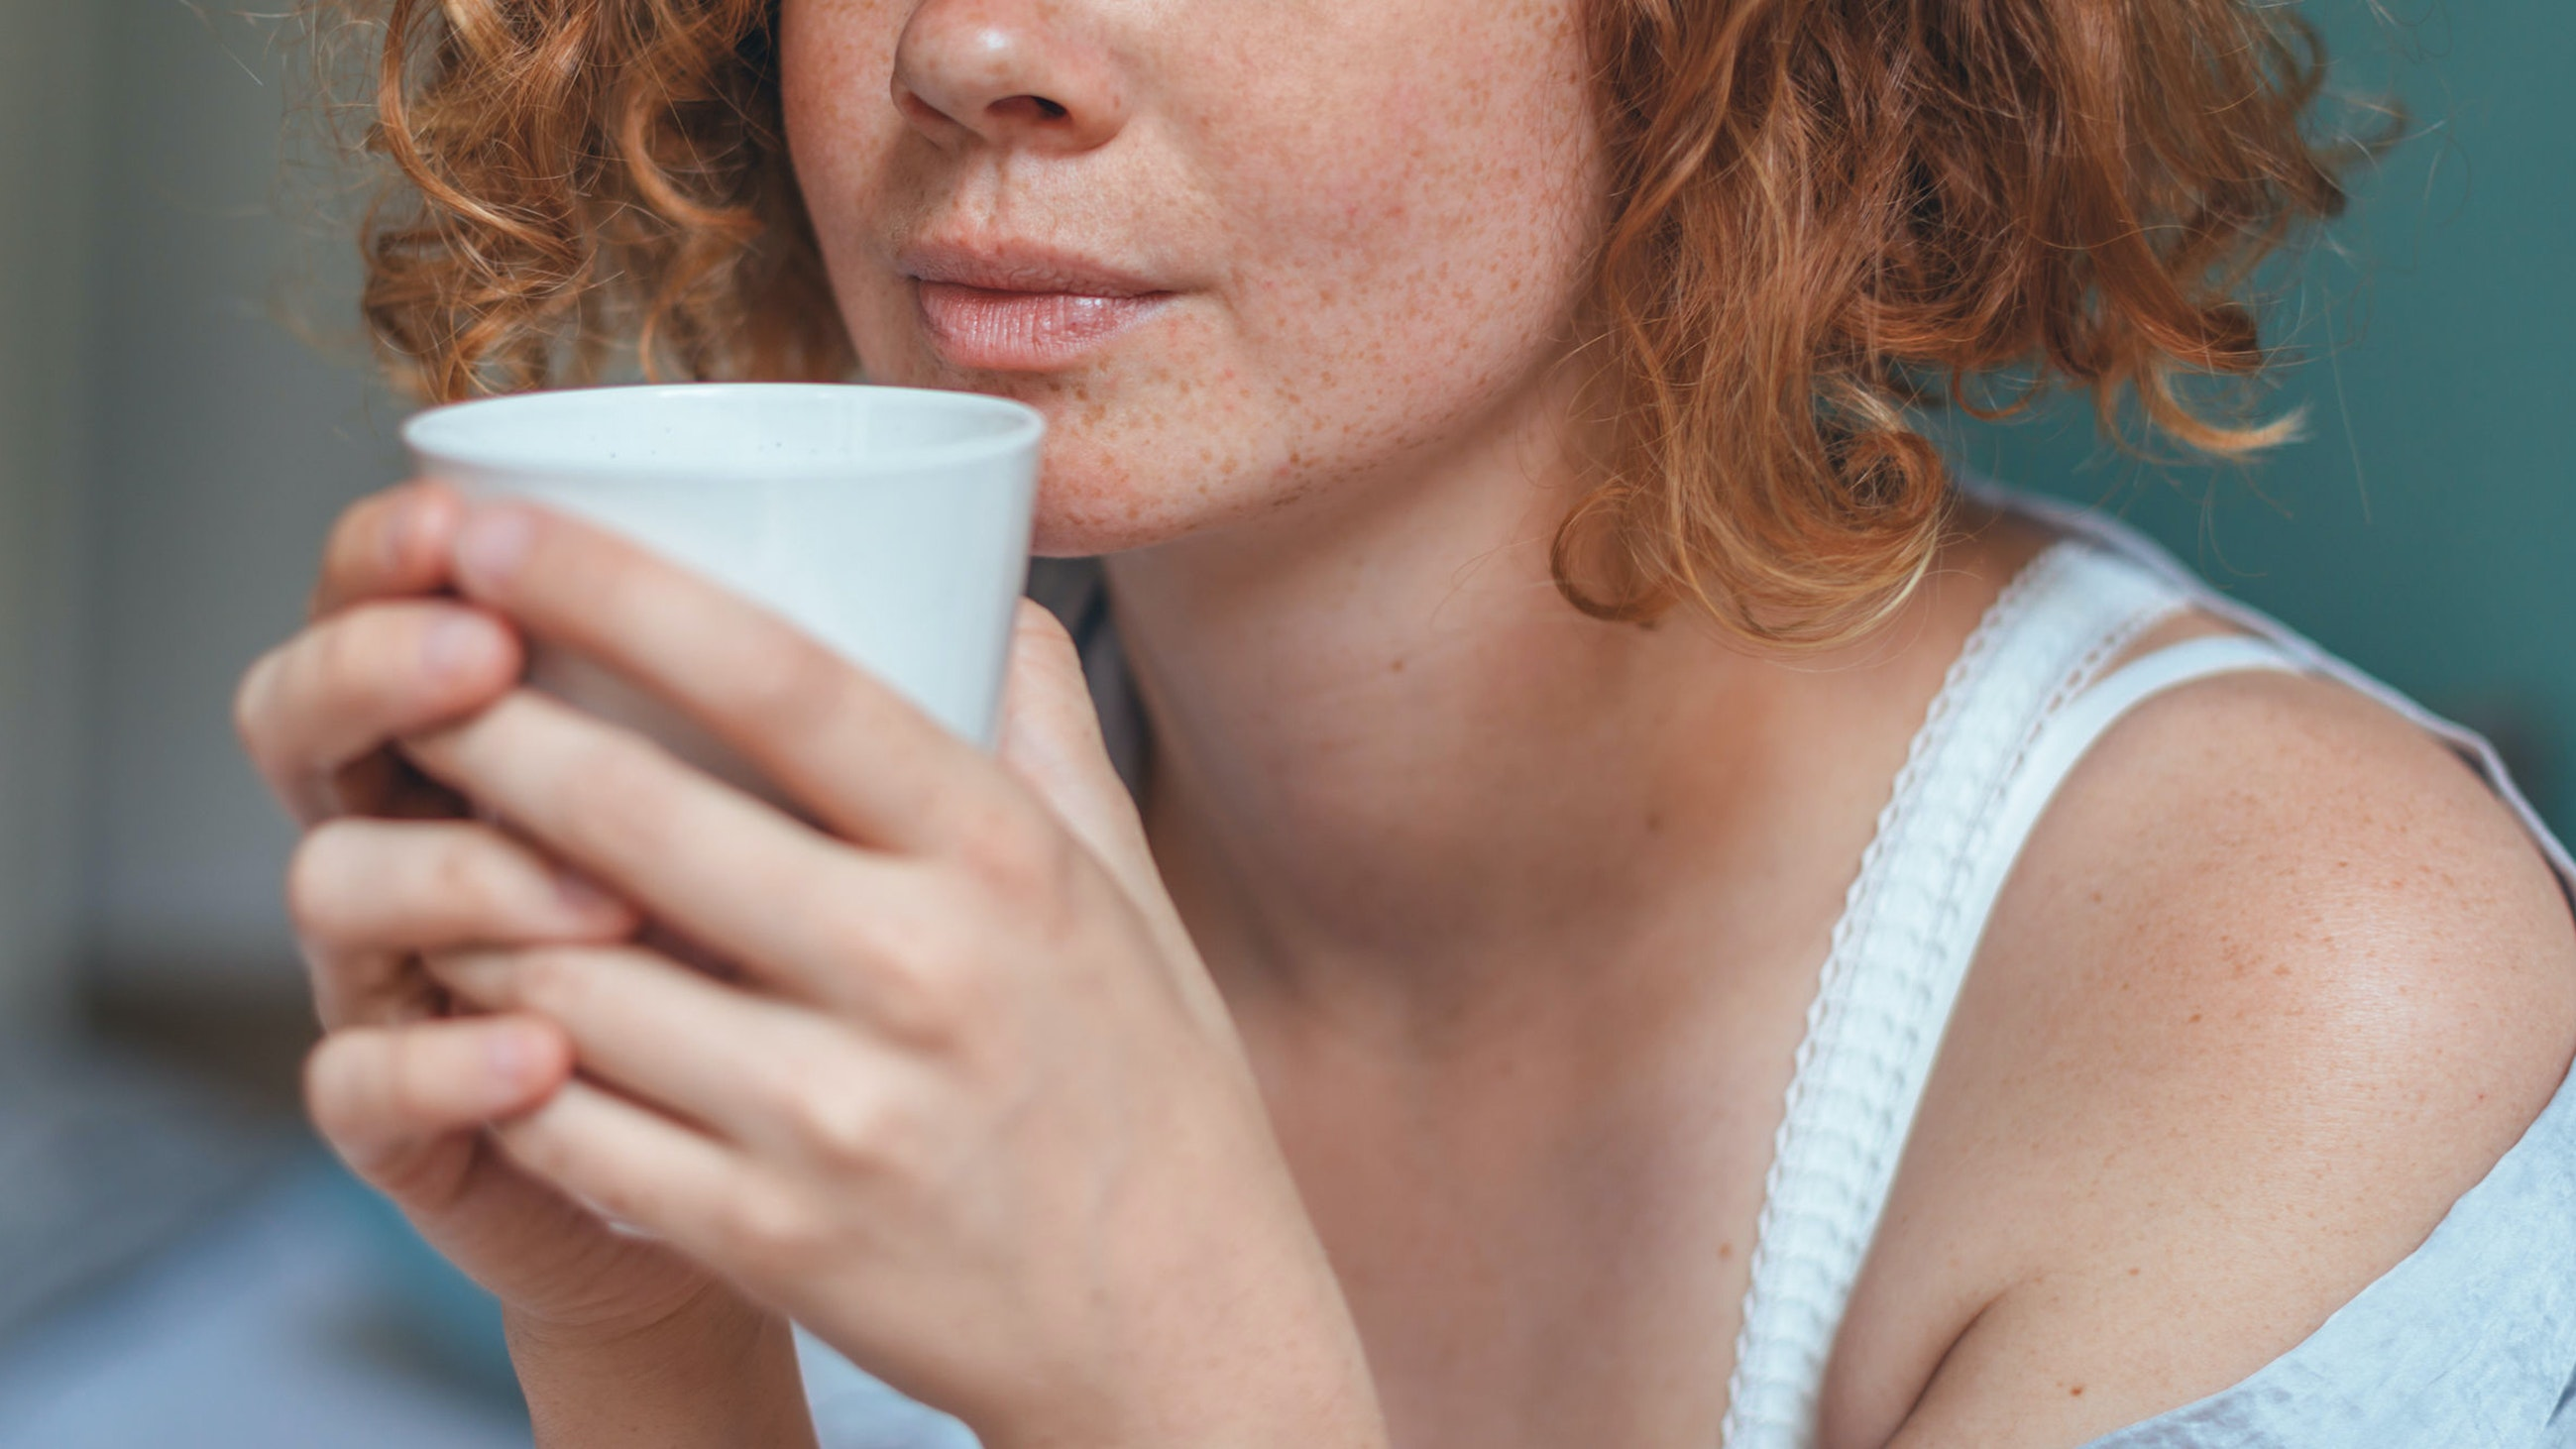 Woman with red hair drinking from cup